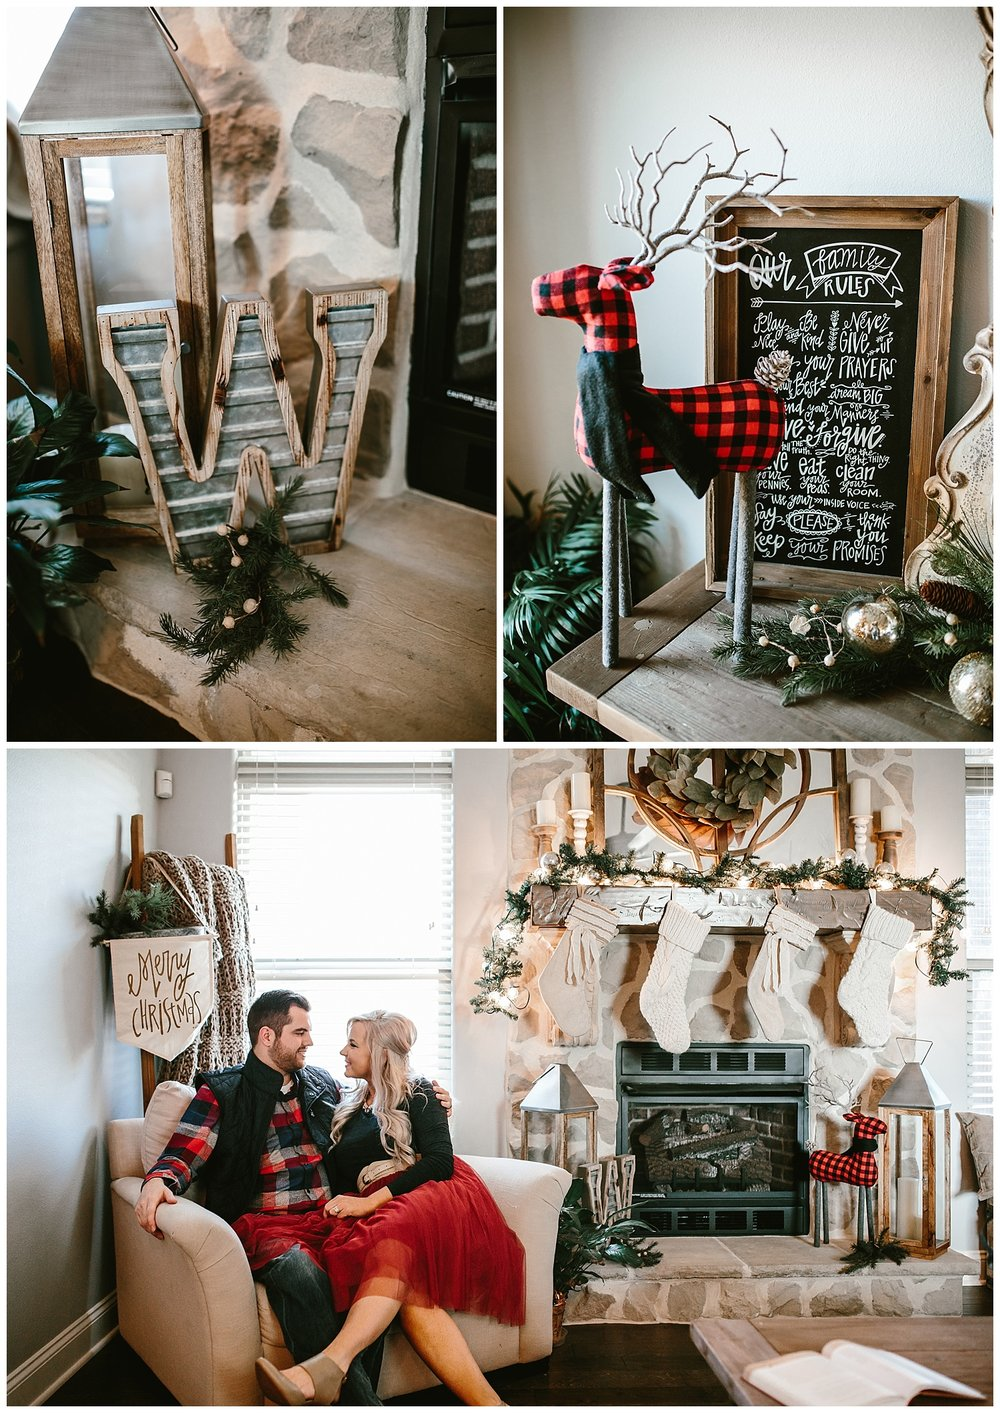 Lifestyle at home Christmas engagement shoot-10.jpg